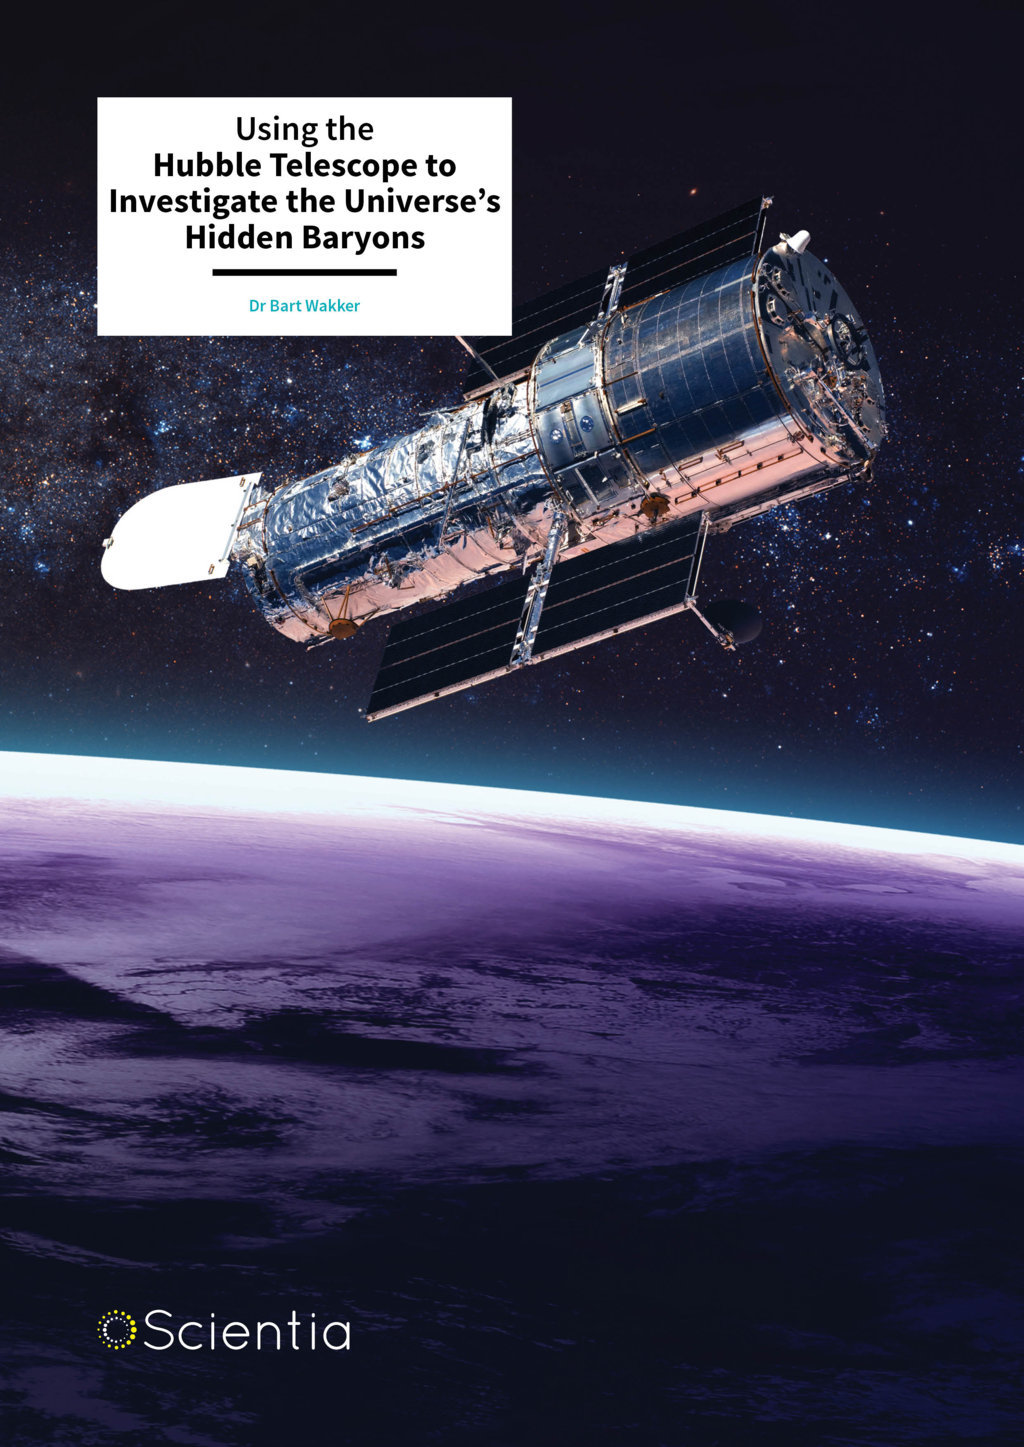 Dr Bart Wakker – Using The Hubble Telescope To Investigate The Universe's Hidden Baryons